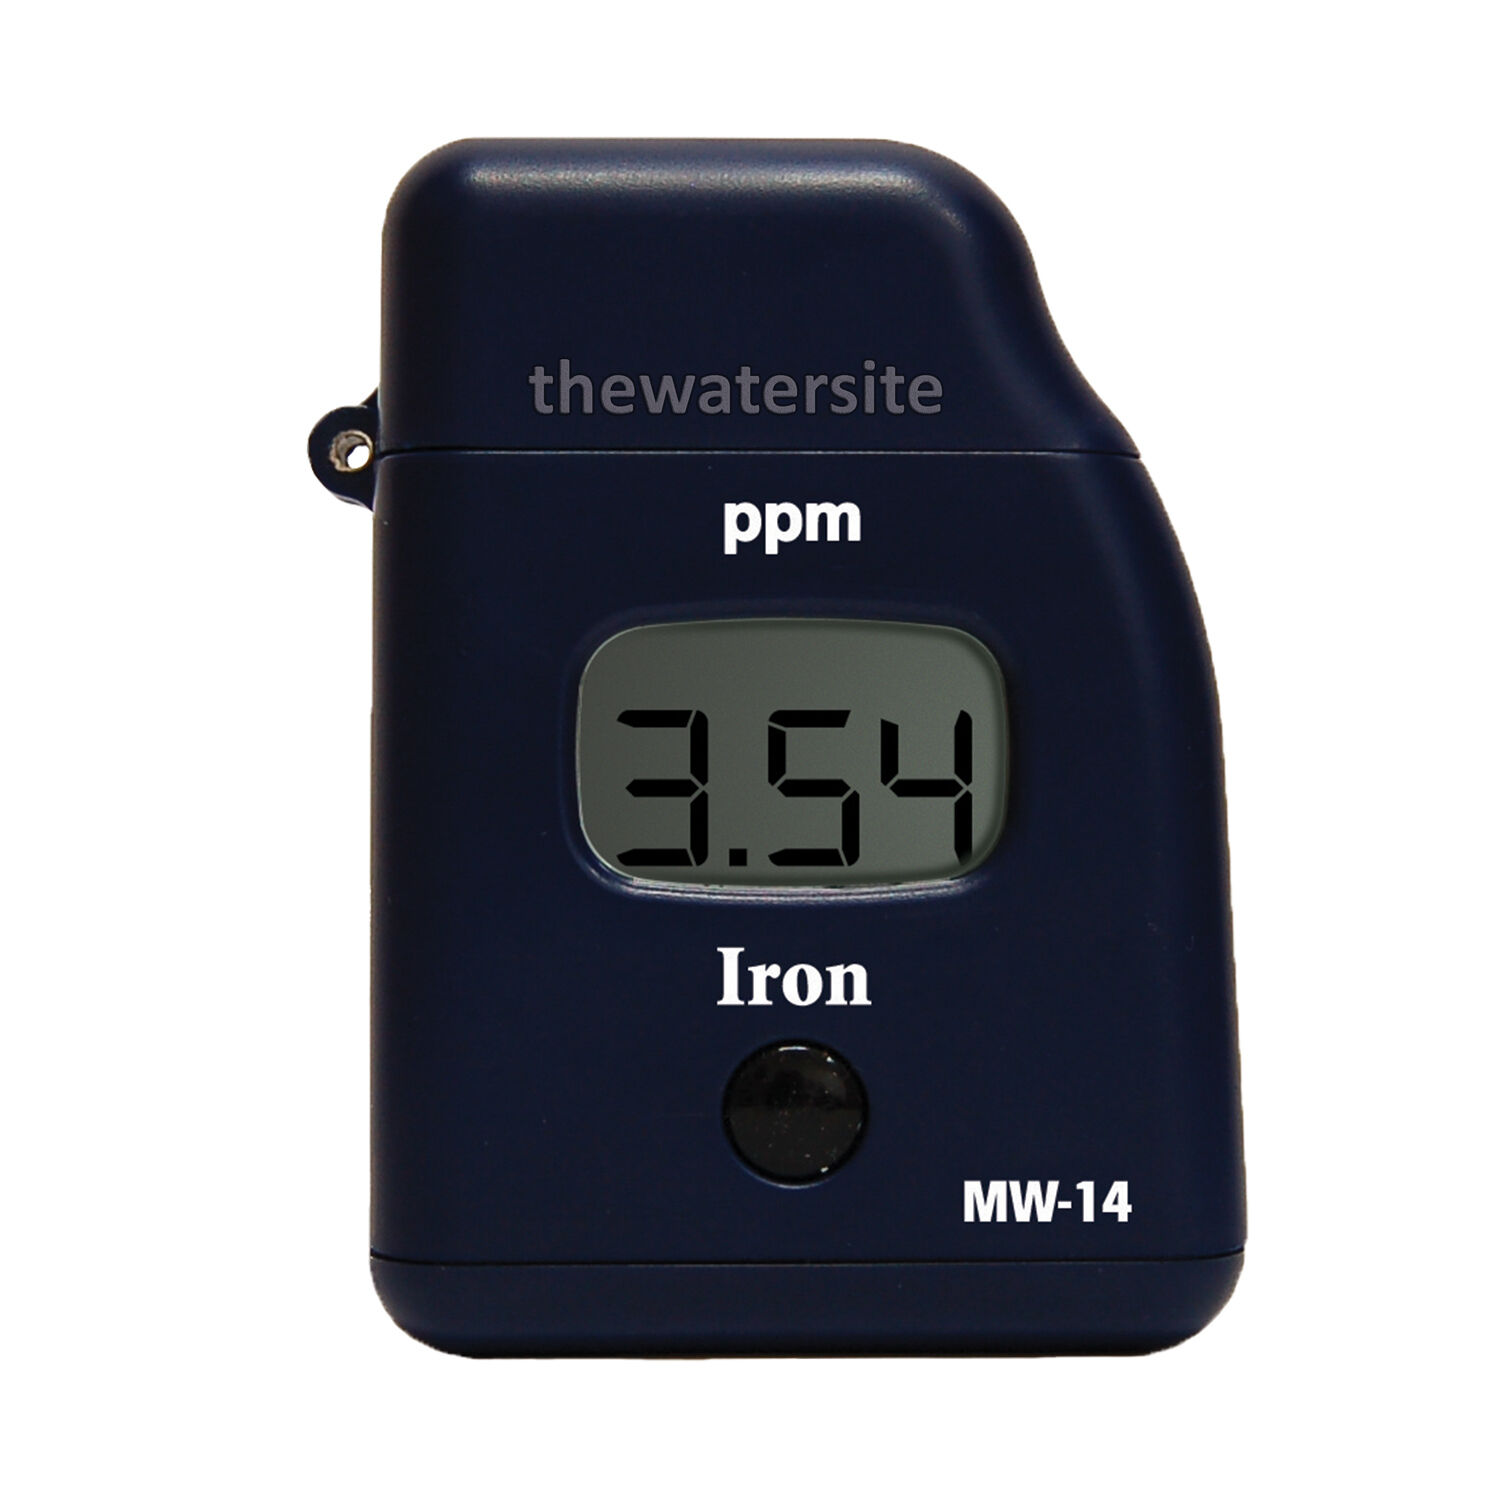 Milwaukee MW14 Iron Water Test Meter LCD Display,Bore Holes,Private Water Supply